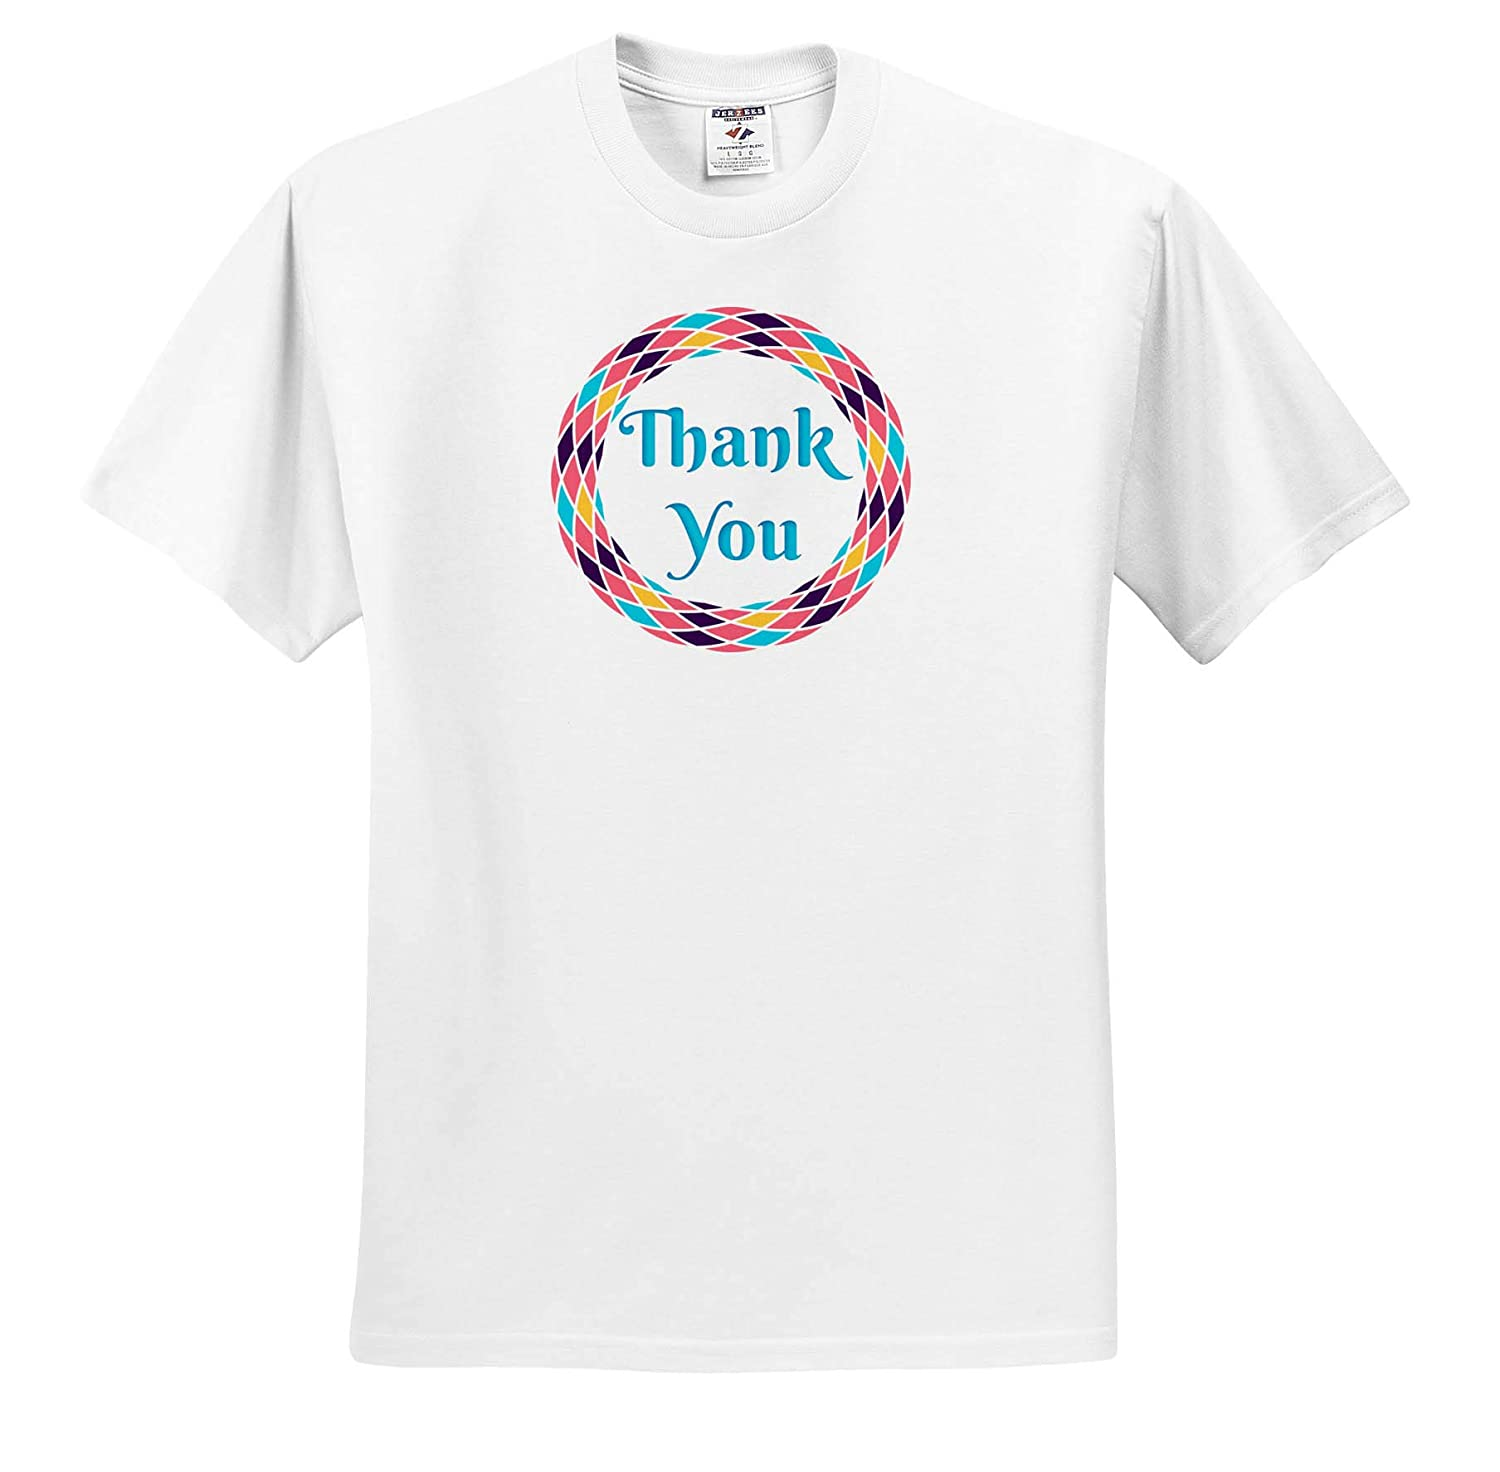 Image of Thank You Adult T-Shirt XL 3dRose Carrie Merchant Image Quote ts/_317451